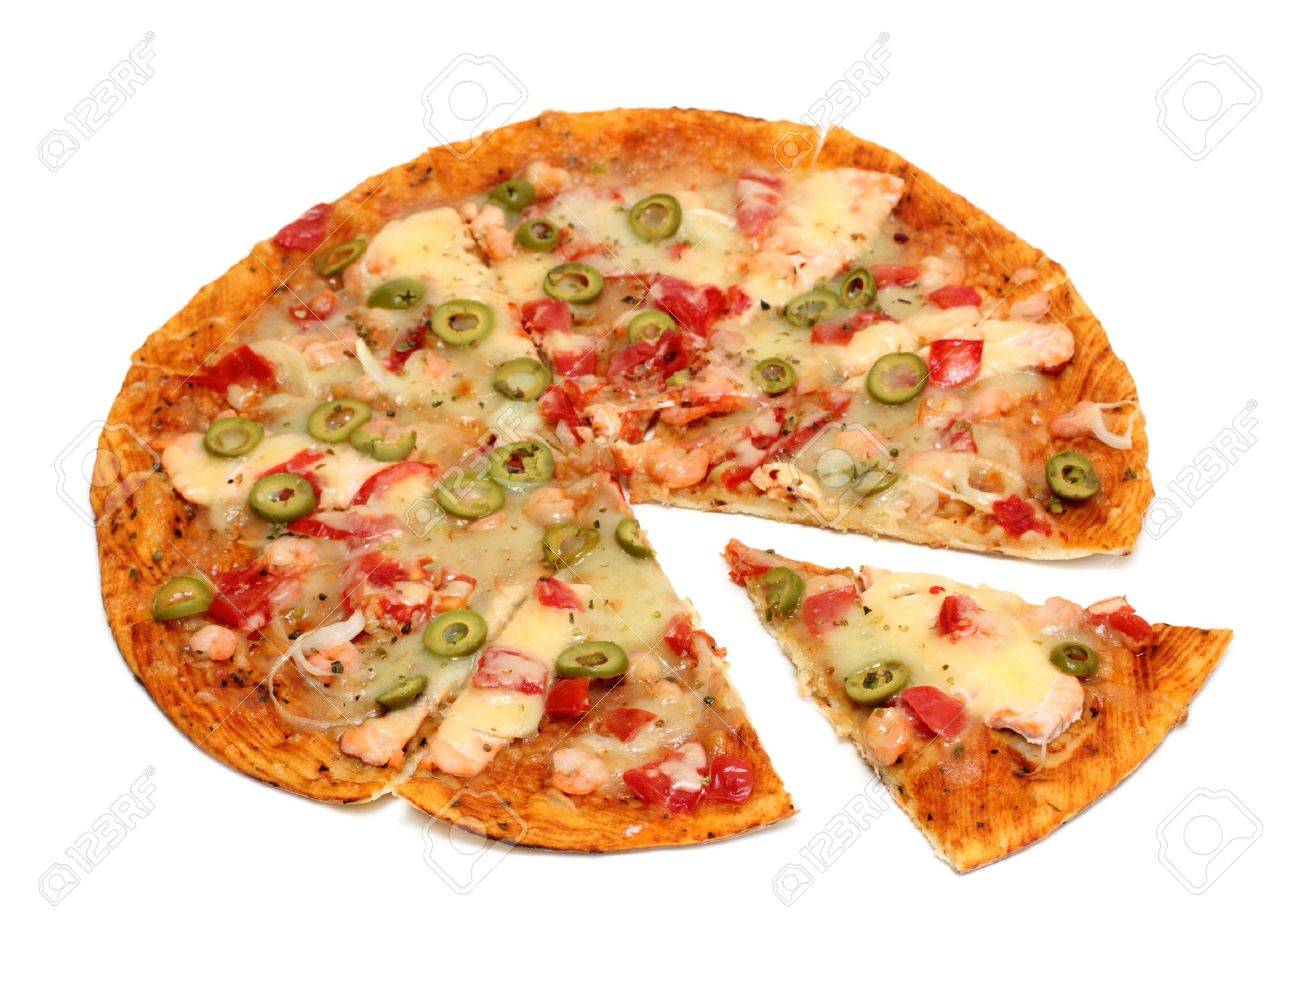 pizza with seafood and olives - 12523260